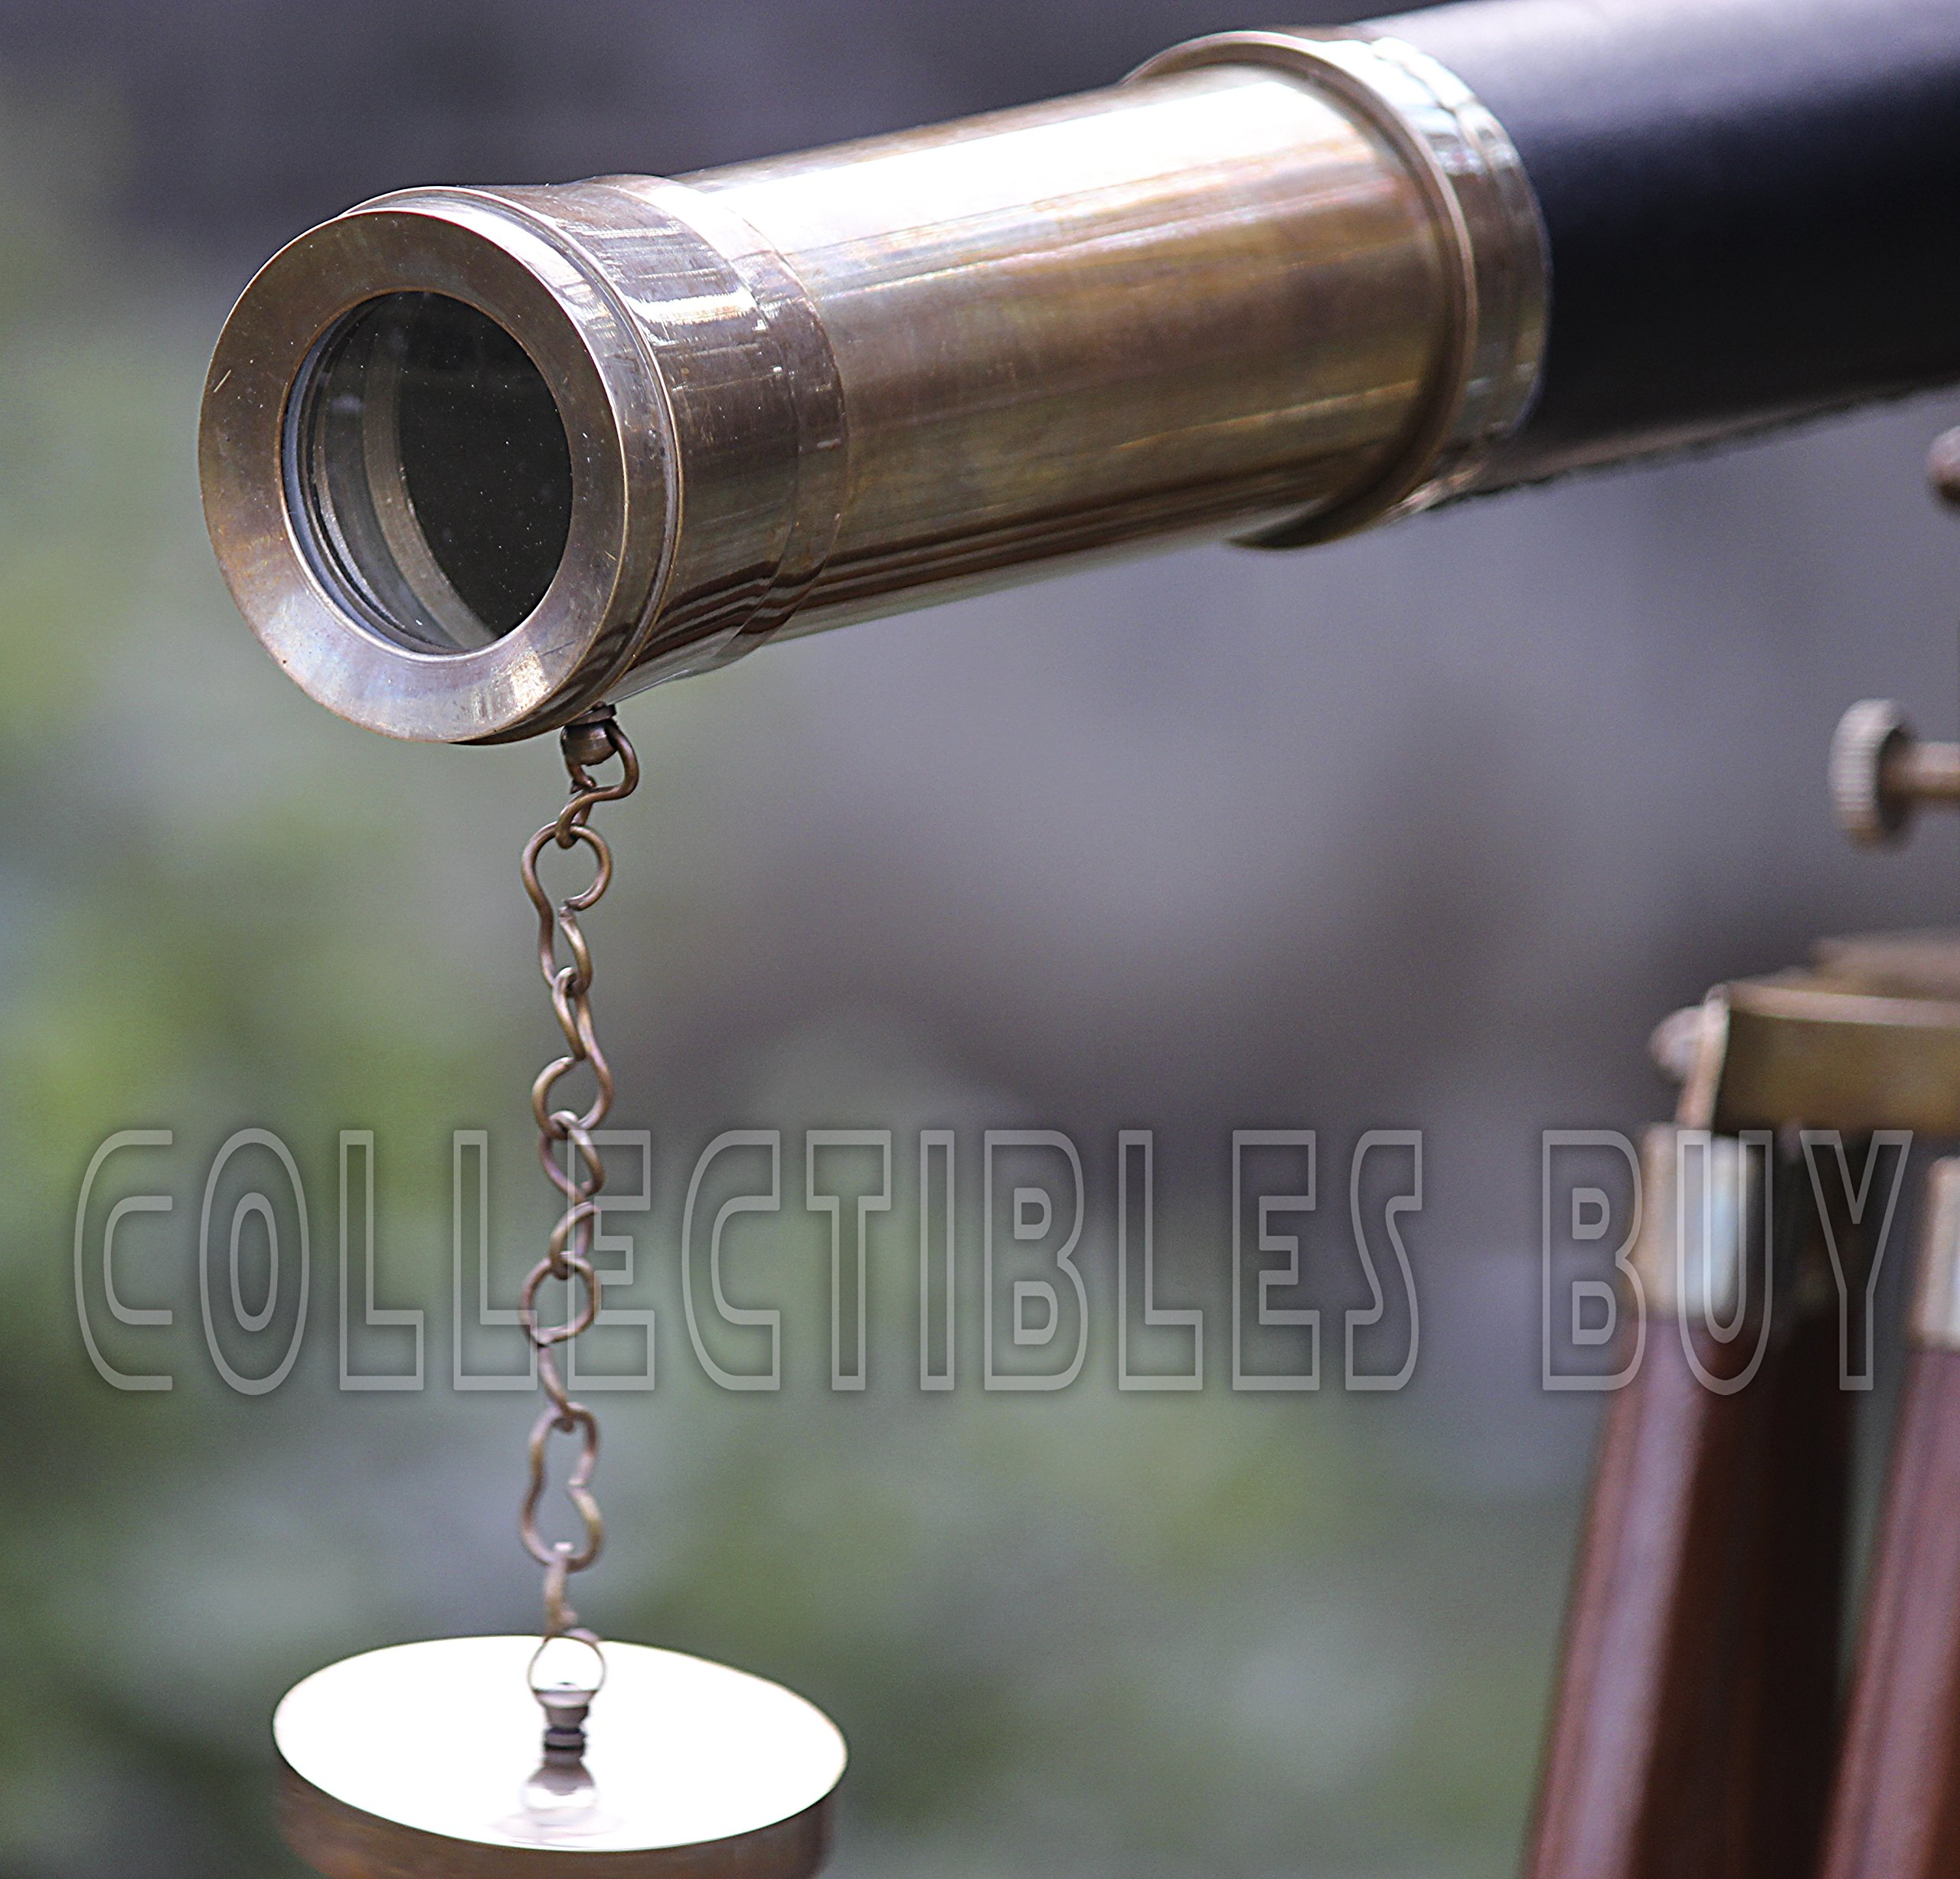 Sailor Boat Antique Telescope Black Leather Wooden Stand Marine Royal Telescopes by Collectibles Buy (Image #4)